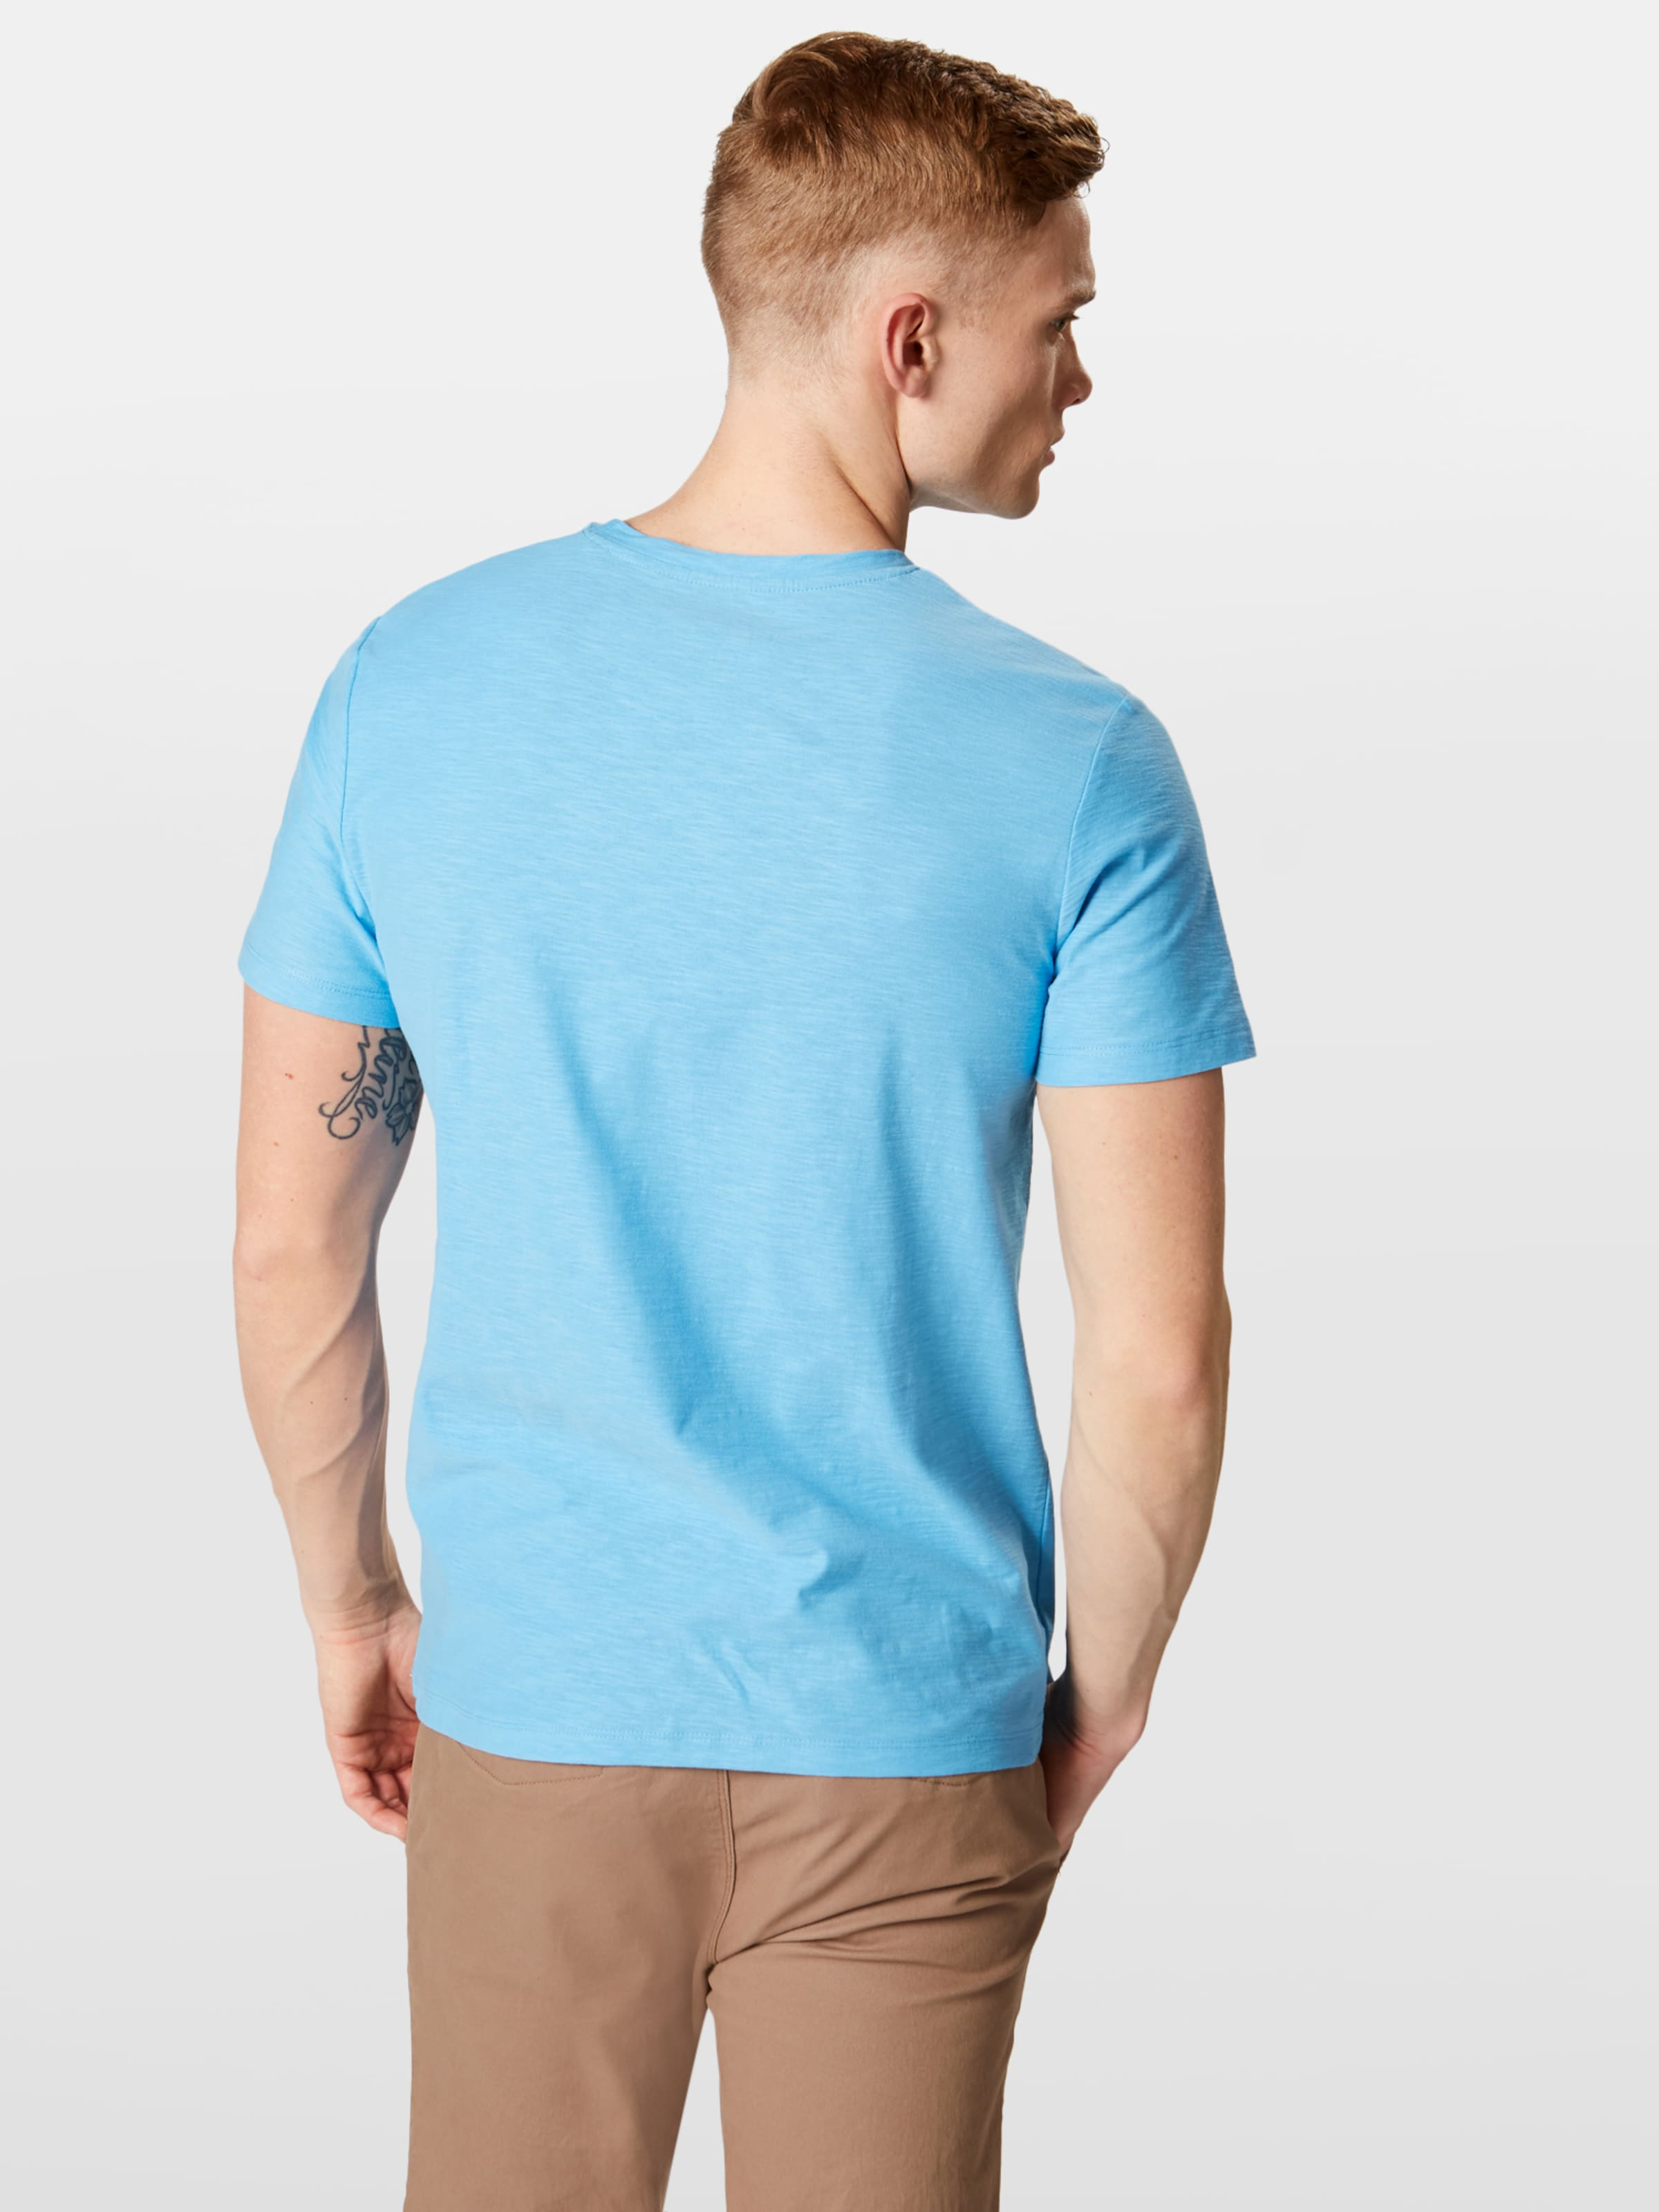 shirt T Clair Jackamp; Jones En Bleu OZkuiXP